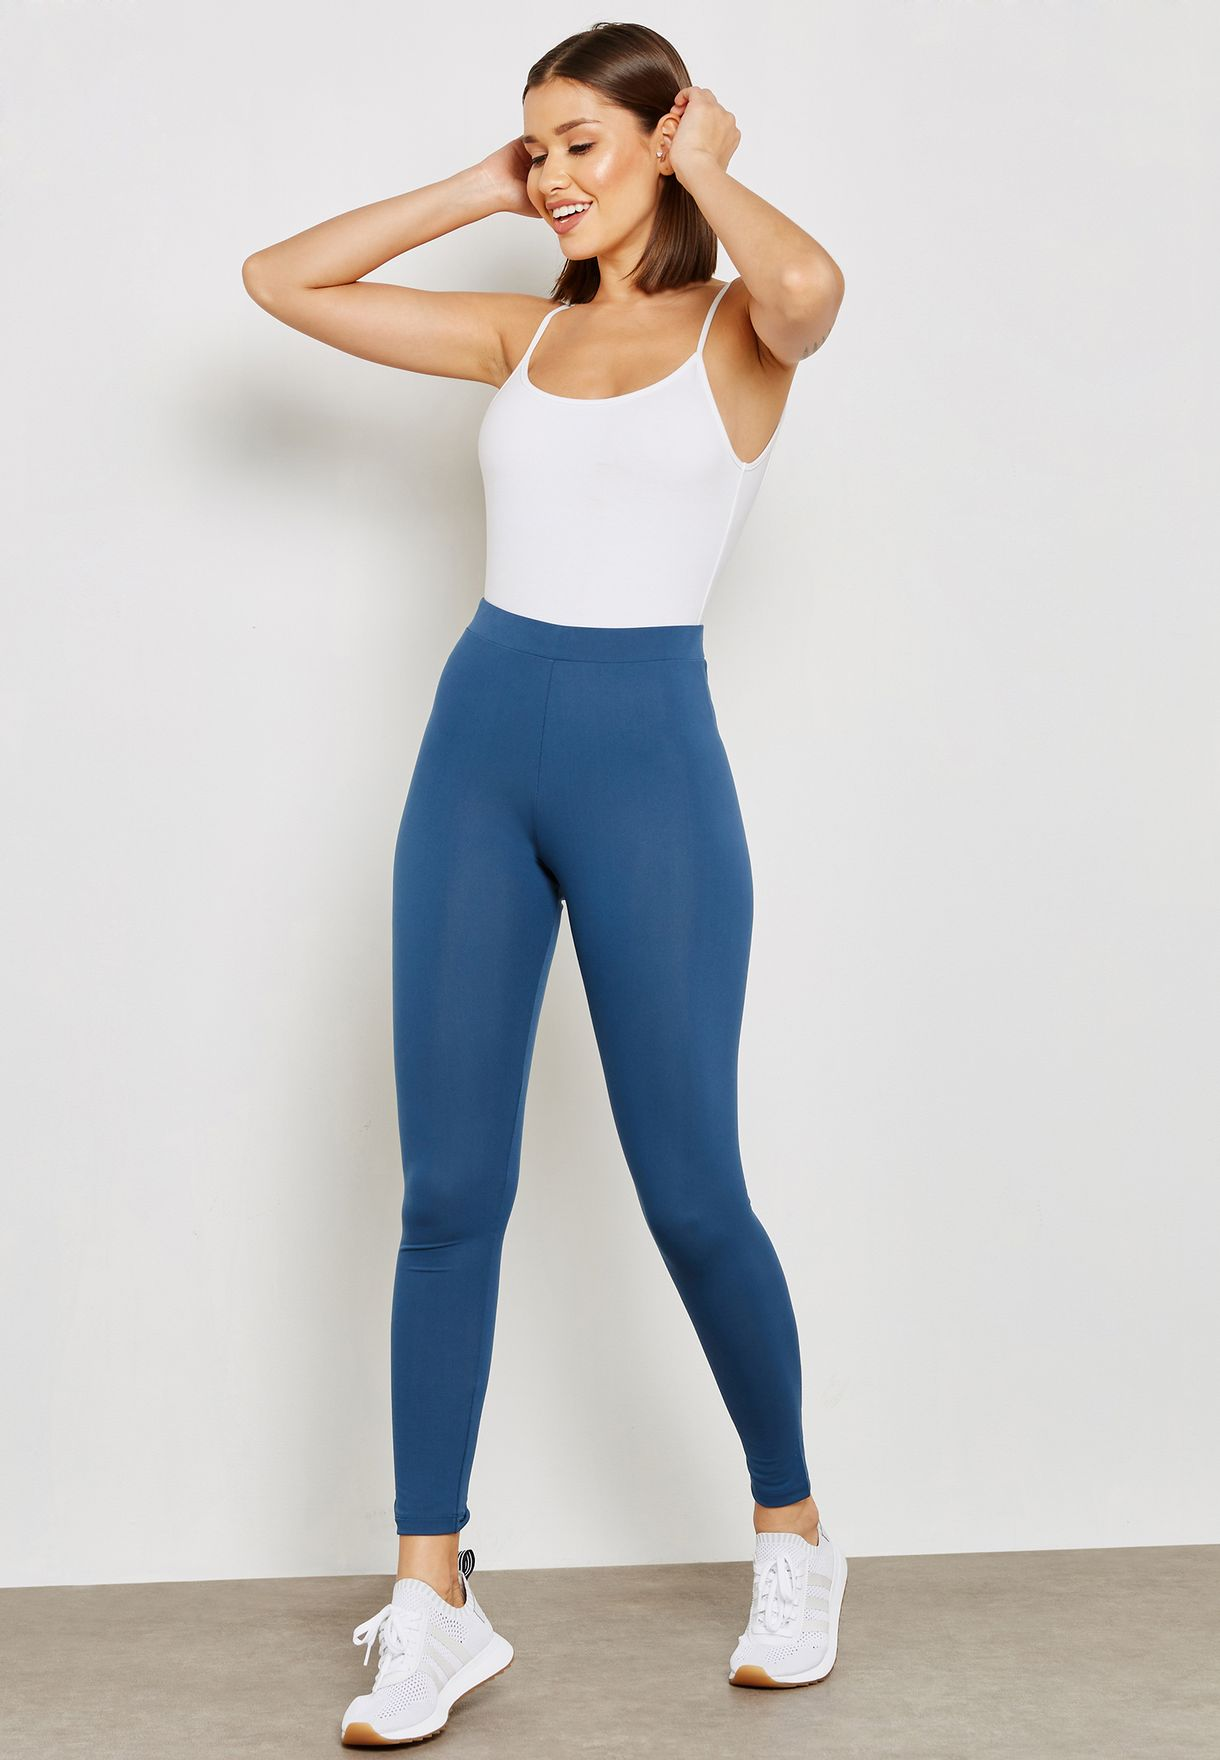 Adicolor Leggings Cw5078 For Trefoil Shop Blue Originals Adidas tqO4C